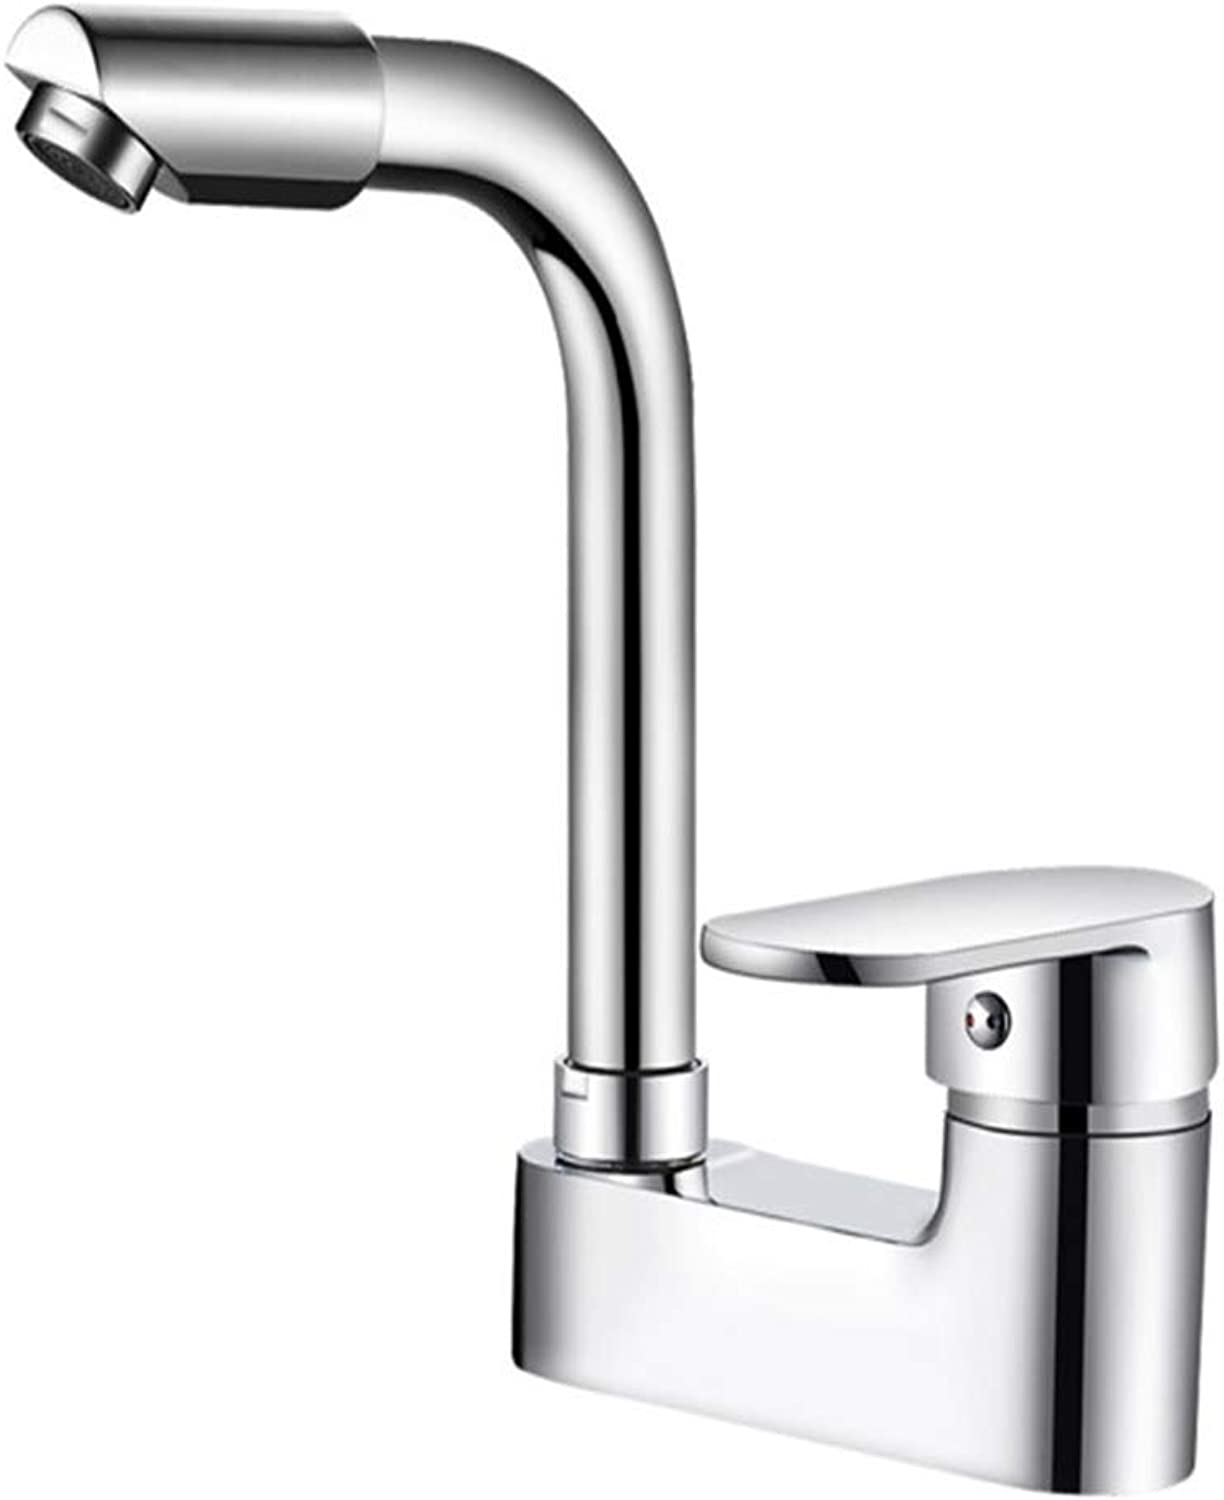 Kitchen Taps Faucet Modern Kitchen Sink Taps Stainless Steelfull Copper Main Body Double-Hole Basin Faucet 360 Degree redary Washbasin Table Basin Cold and Hot Water Faucet